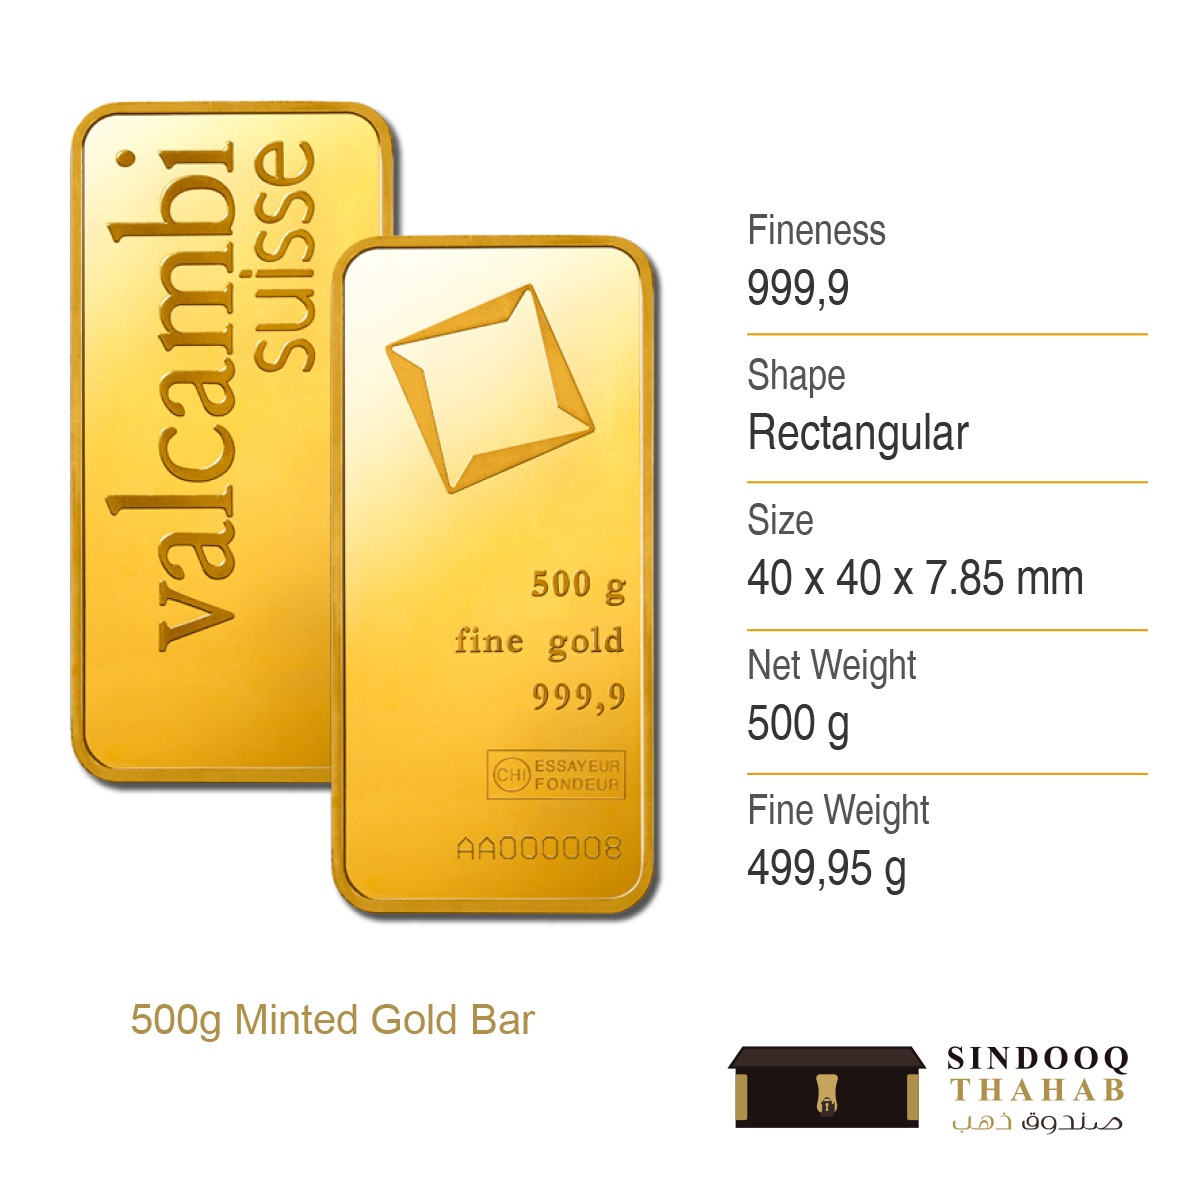 500g Minted Gold Bar